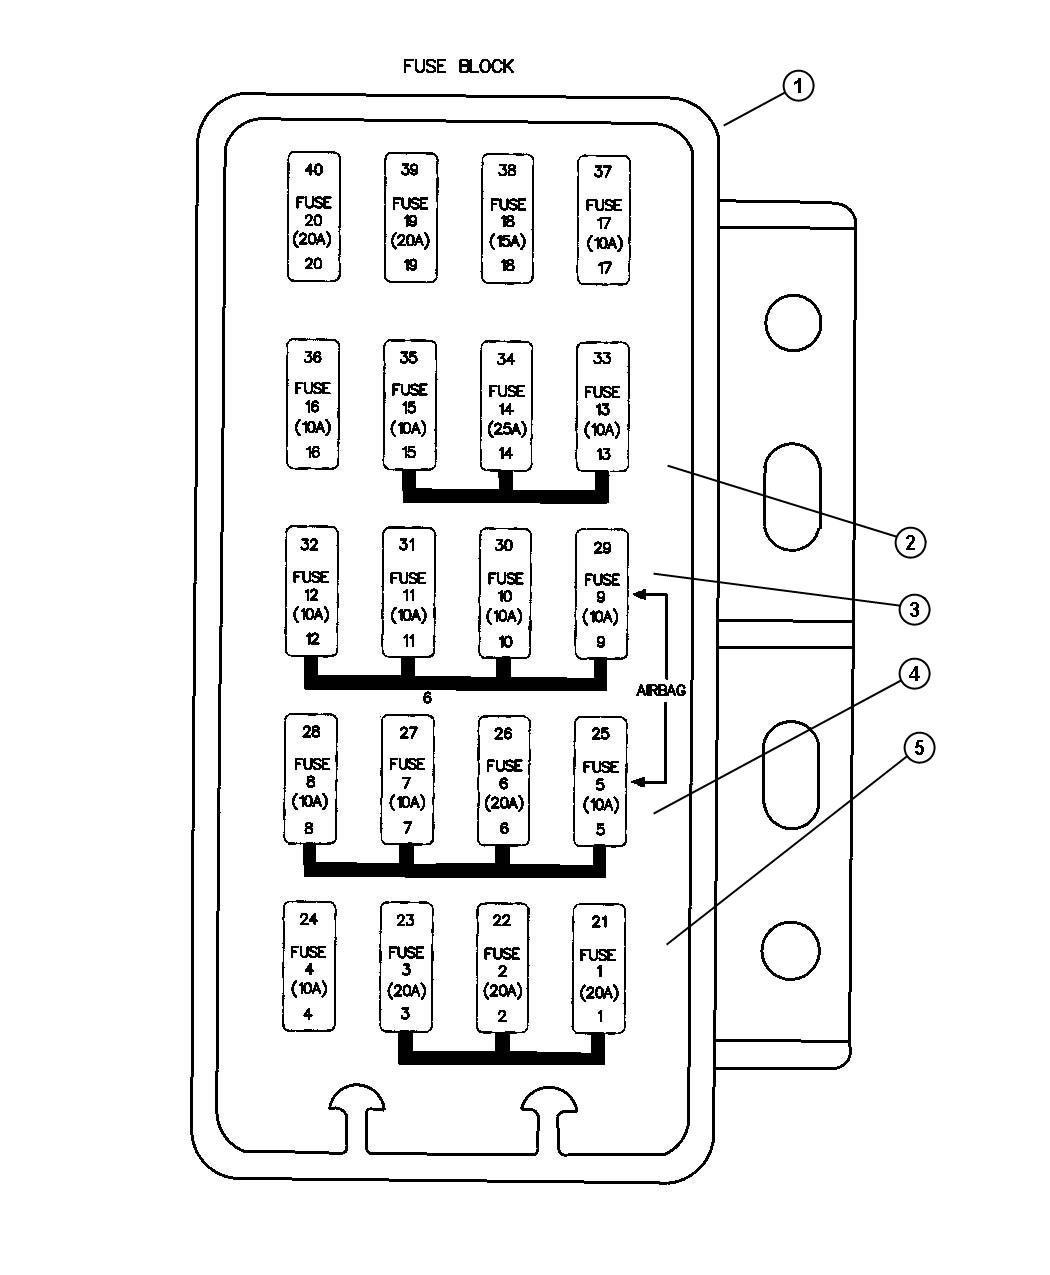 Jeep Wrangler Fuse Block Relays And Fuses